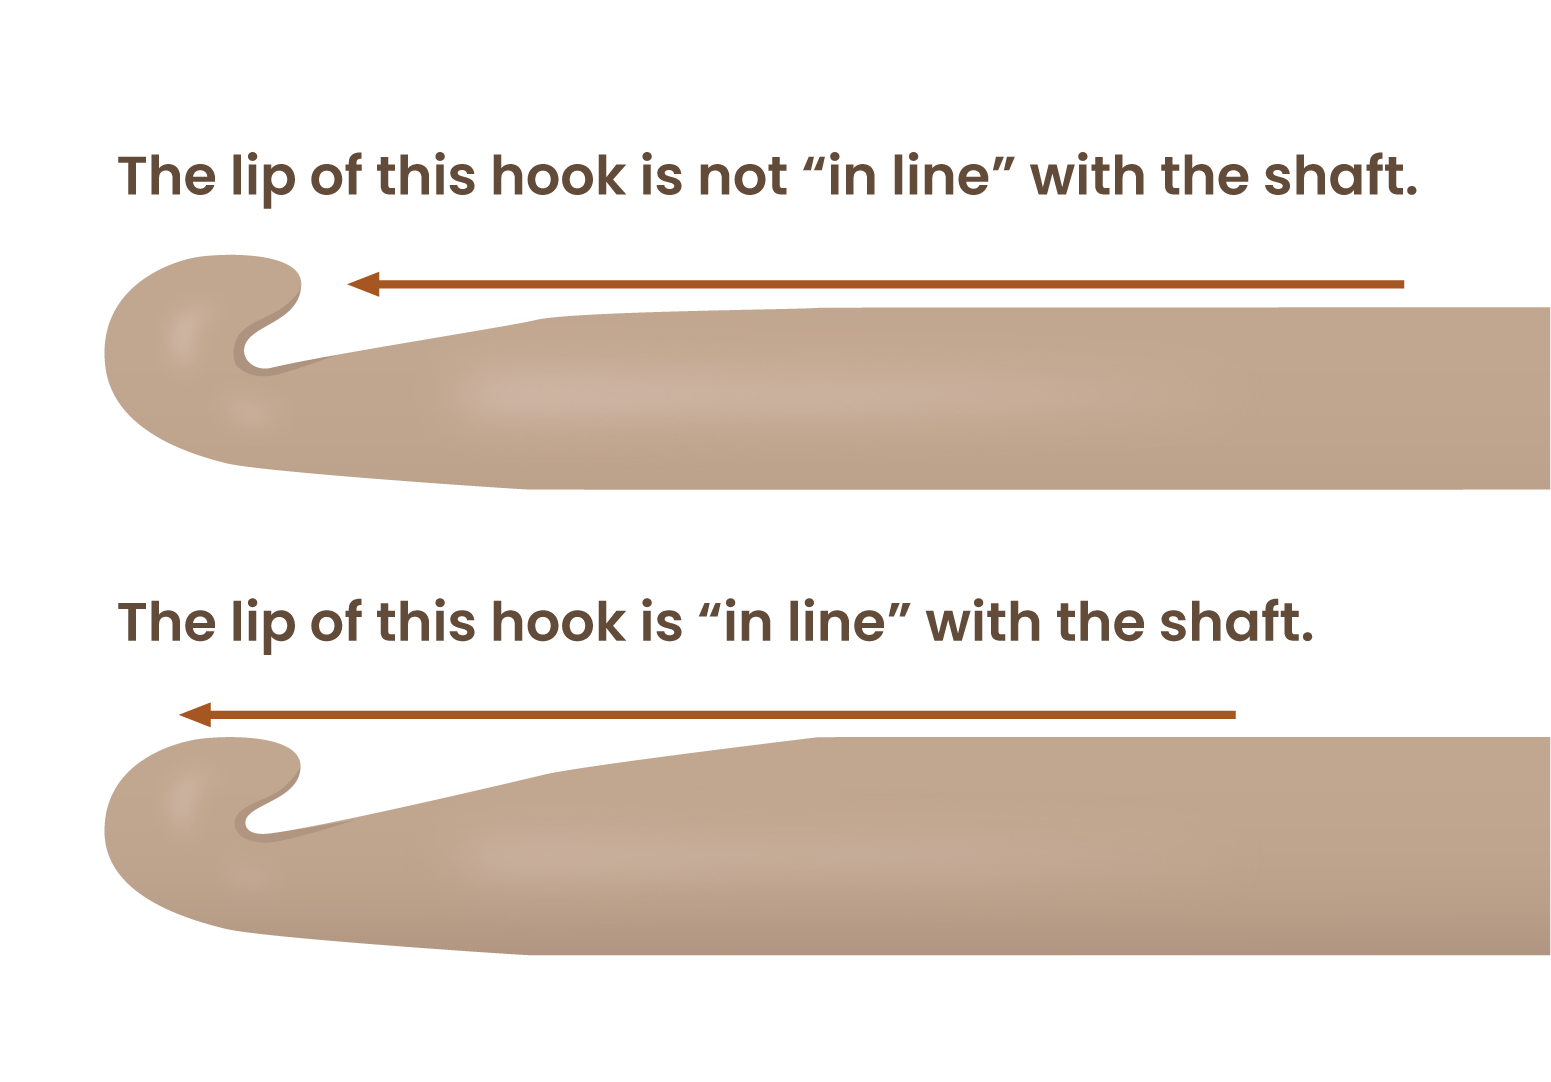 Illustration comparing inline and non-inline crochet hooks